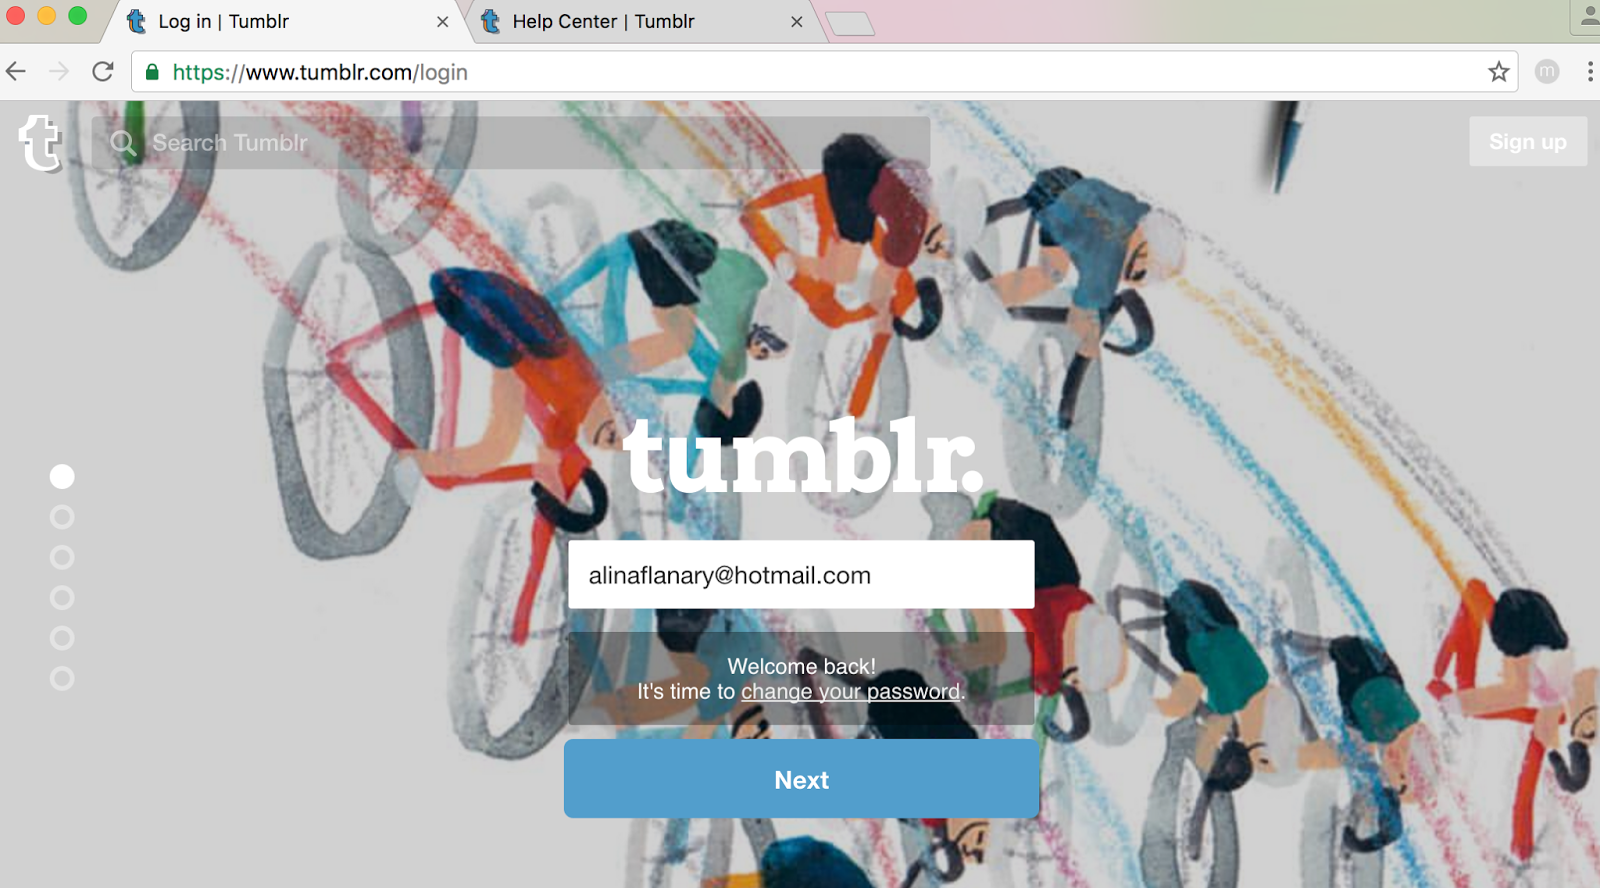 Cannot login to tumblr com ONLY in this browser  - Google